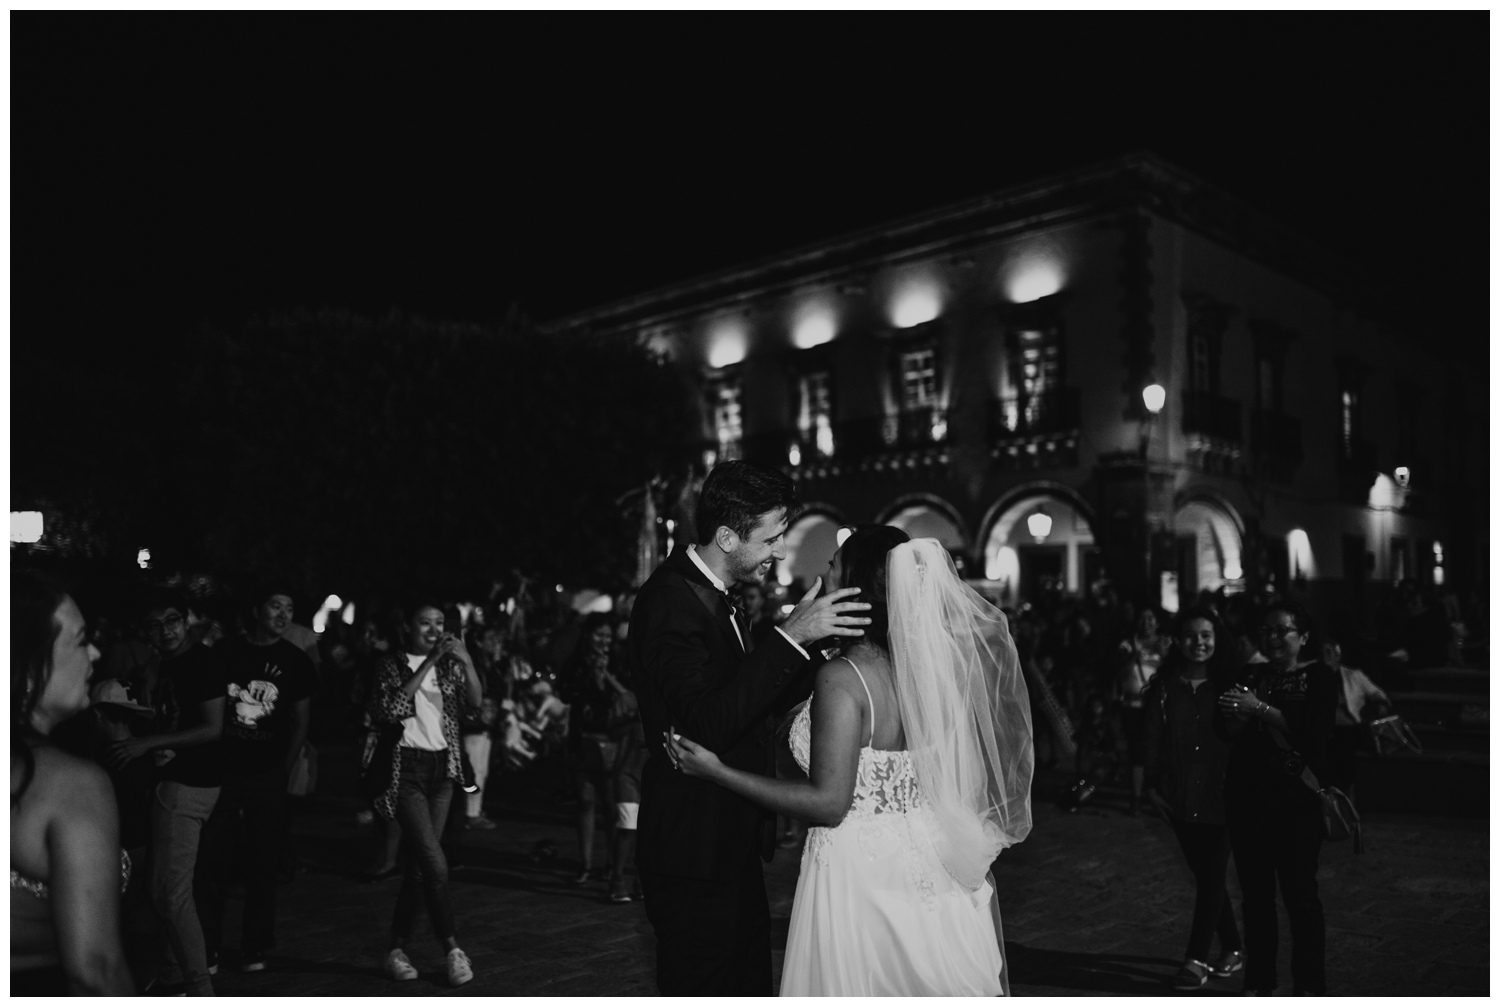 Shane+Sofia, San Miguel de Allende Wedding, Mexico Wedding, Contista Productions Wedding Photography_0103.jpg